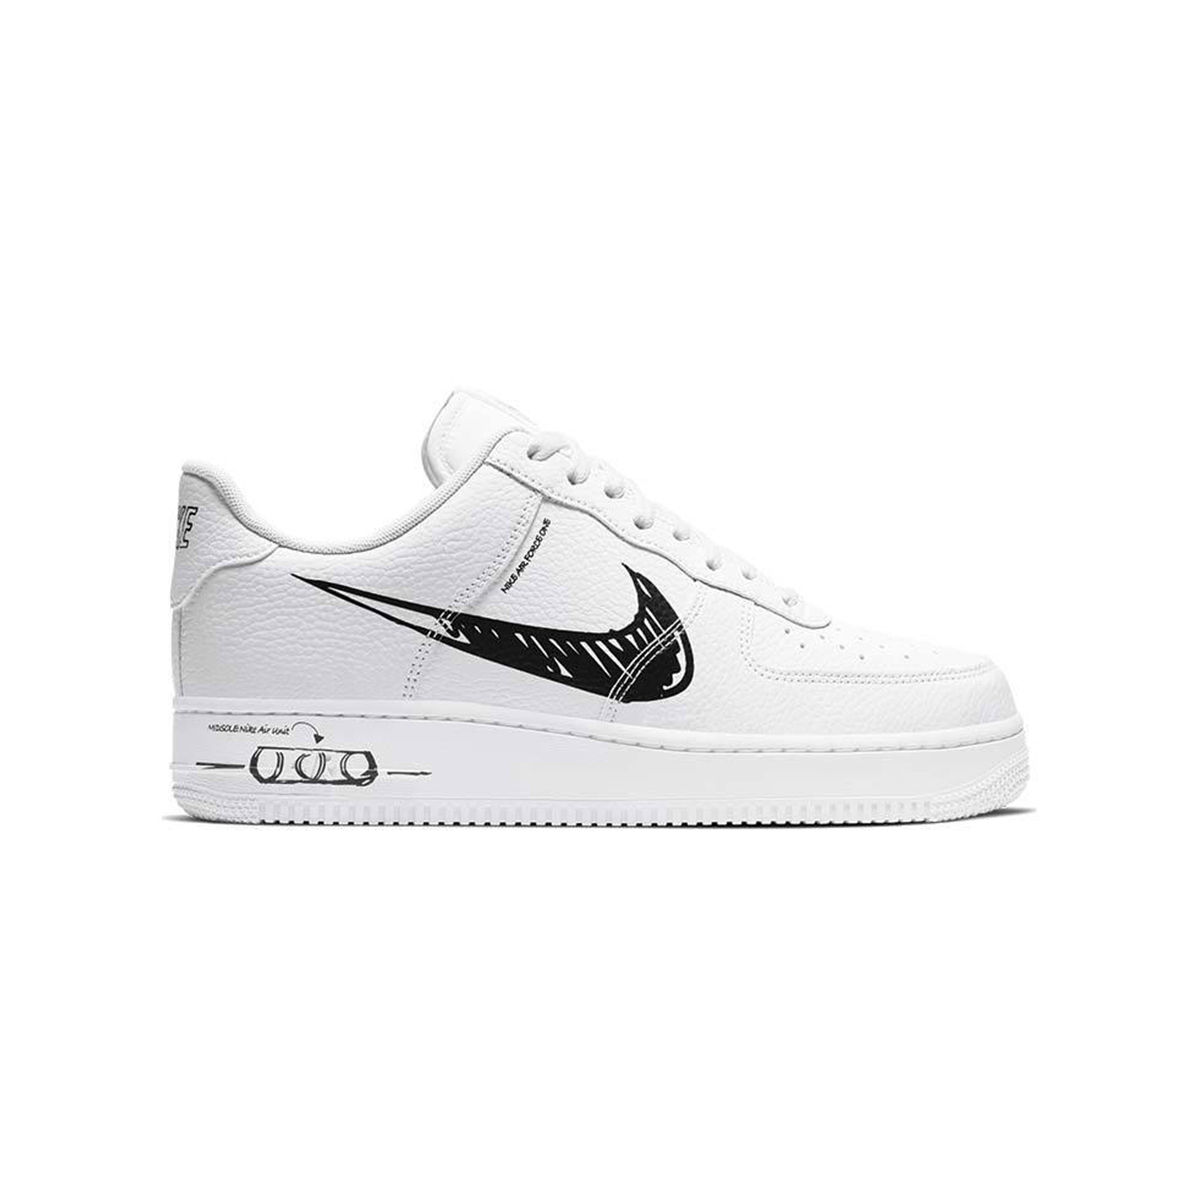 Primary image for Nike Air Force 1 Low LV8 Utility (Sketch White/ Black) Men 8-13